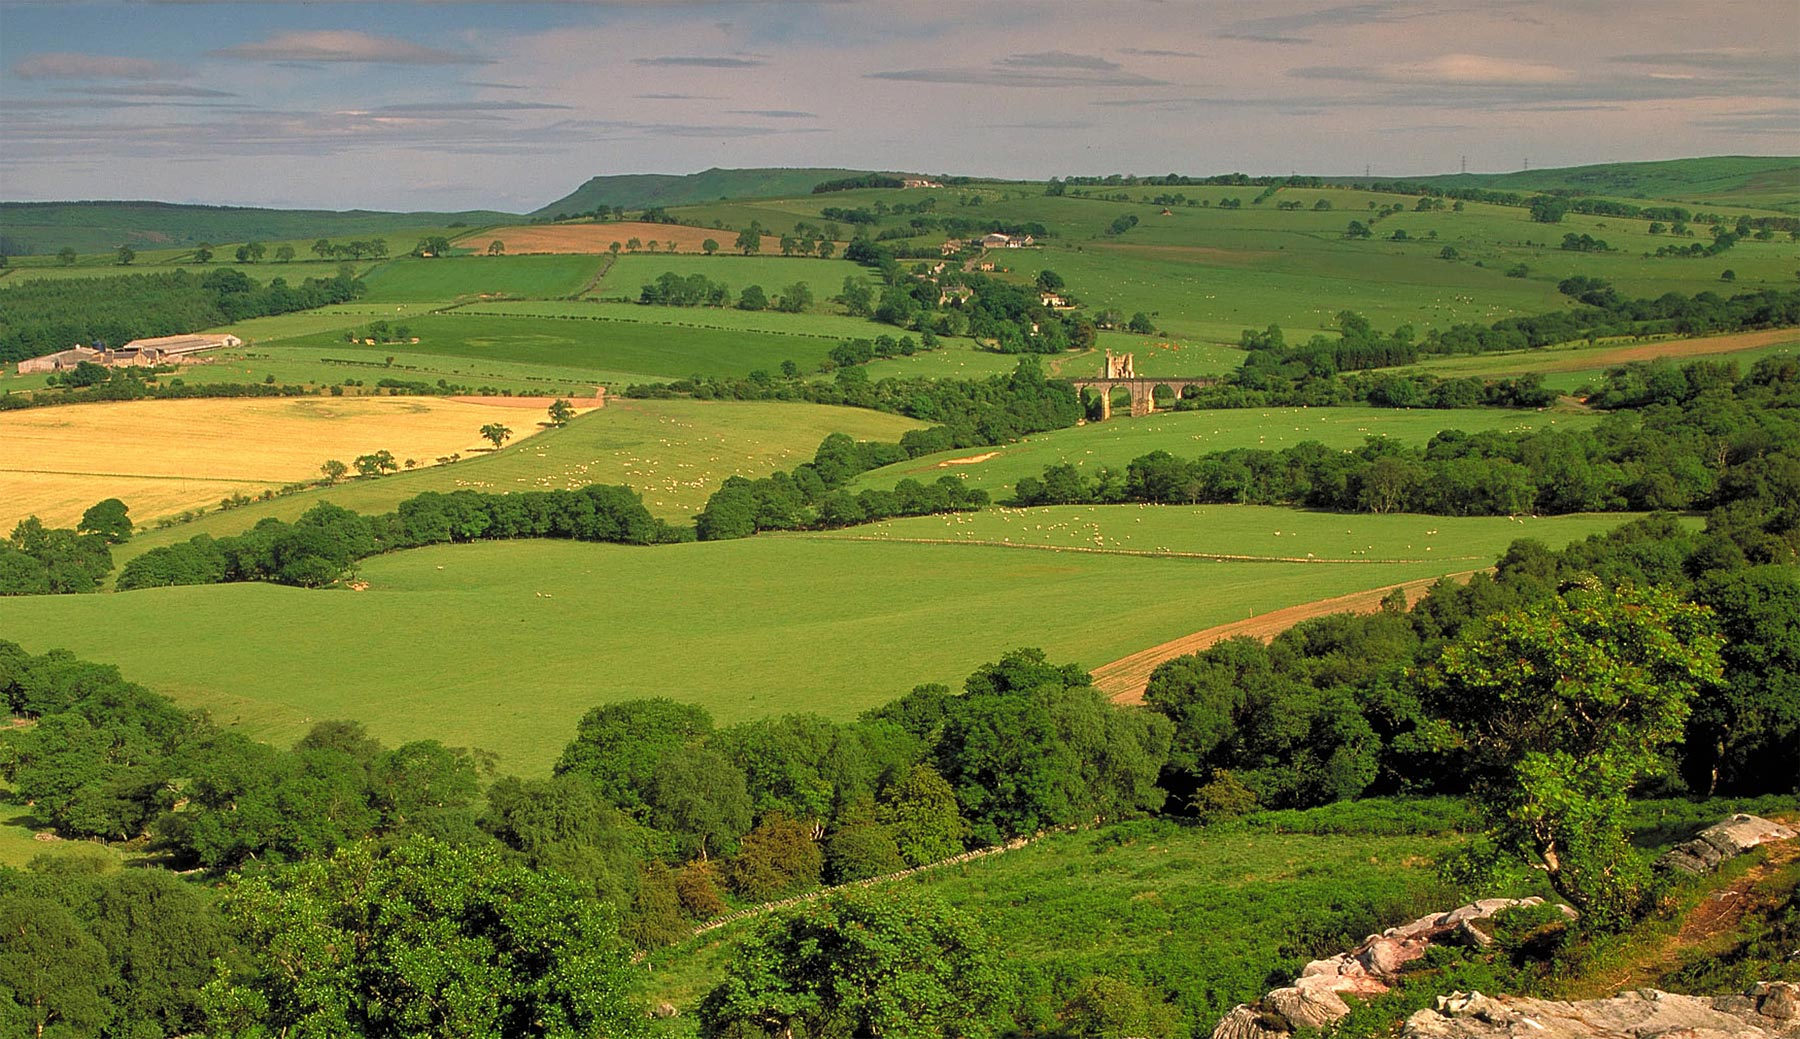 South Ribble In Lancashire Is The UK's BEST Place To Live